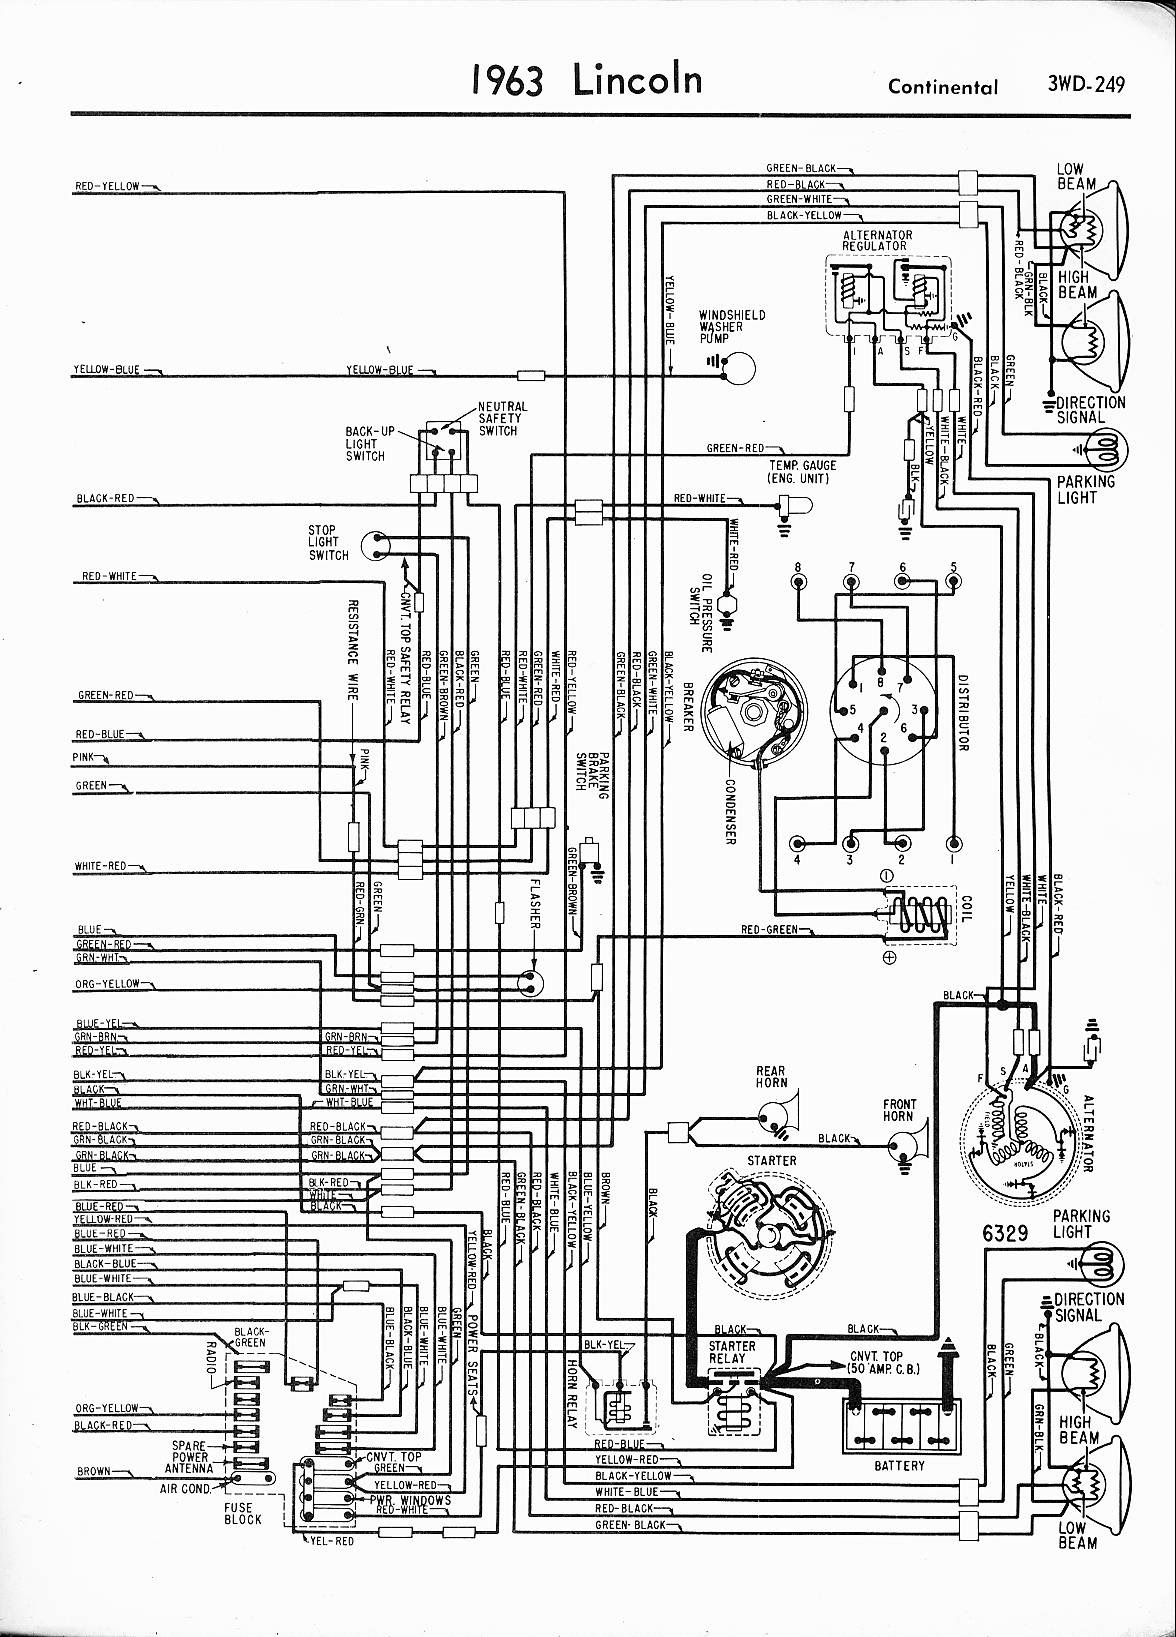 8d8dadd Power Window Switch Wiring Diagram 1999 Lincoln Wiring Library